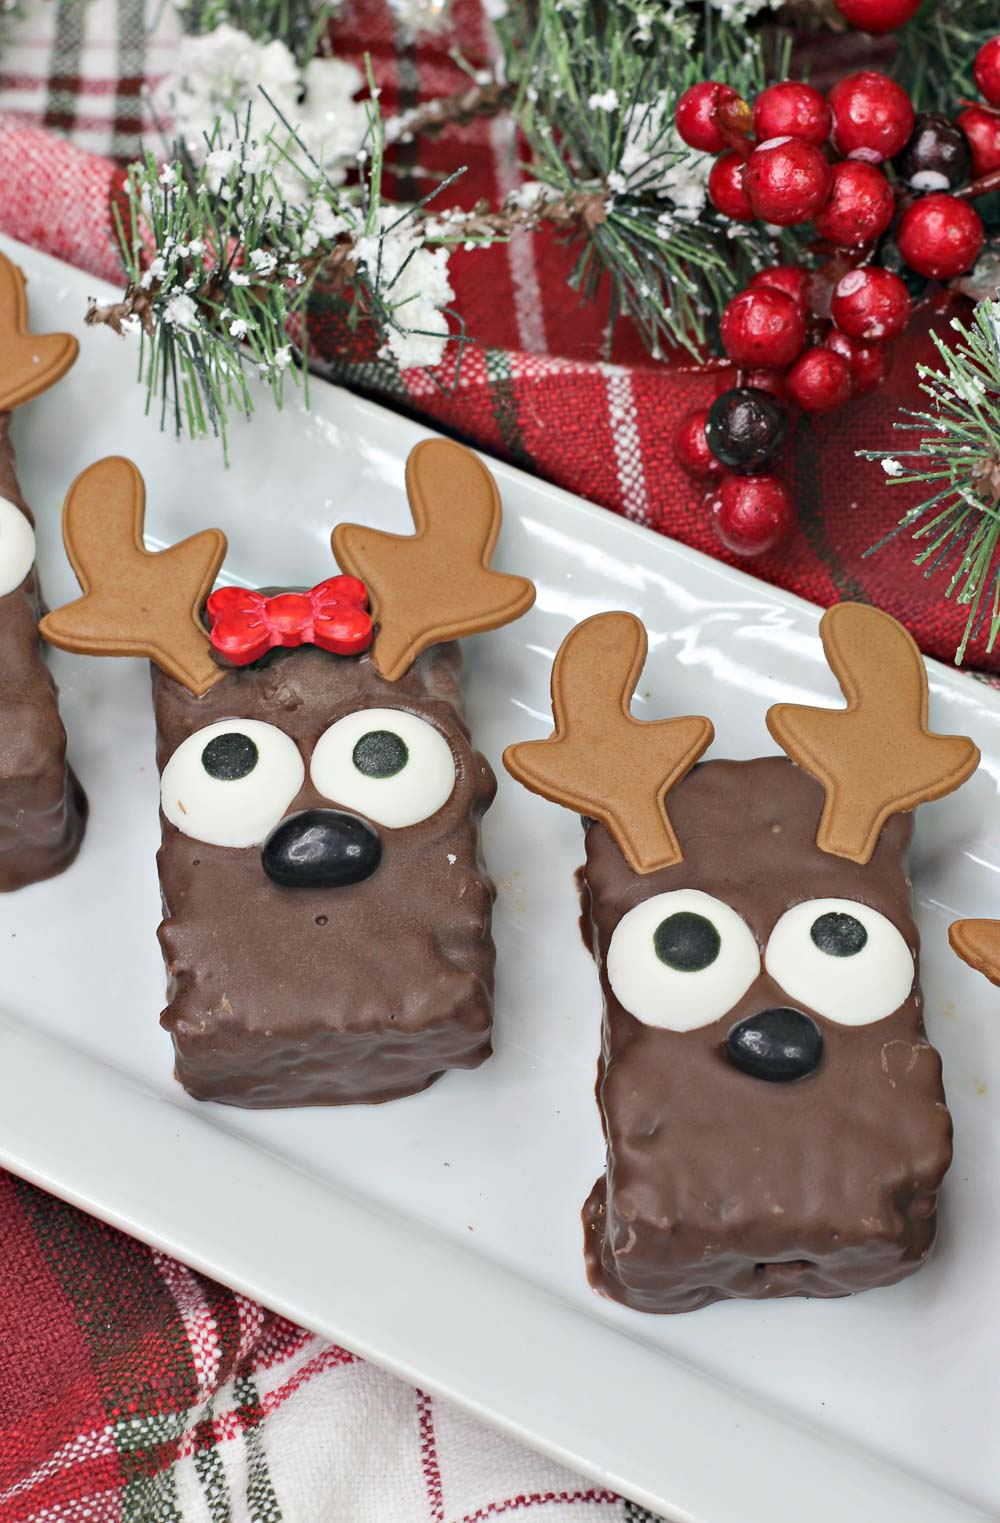 Super fun and easy to make, these no-bake Christmas Reindeer Rice Krispies are a hit with the little ones...and adults! I love that they require minimal ingredients and prep, and they also make fun party treats!